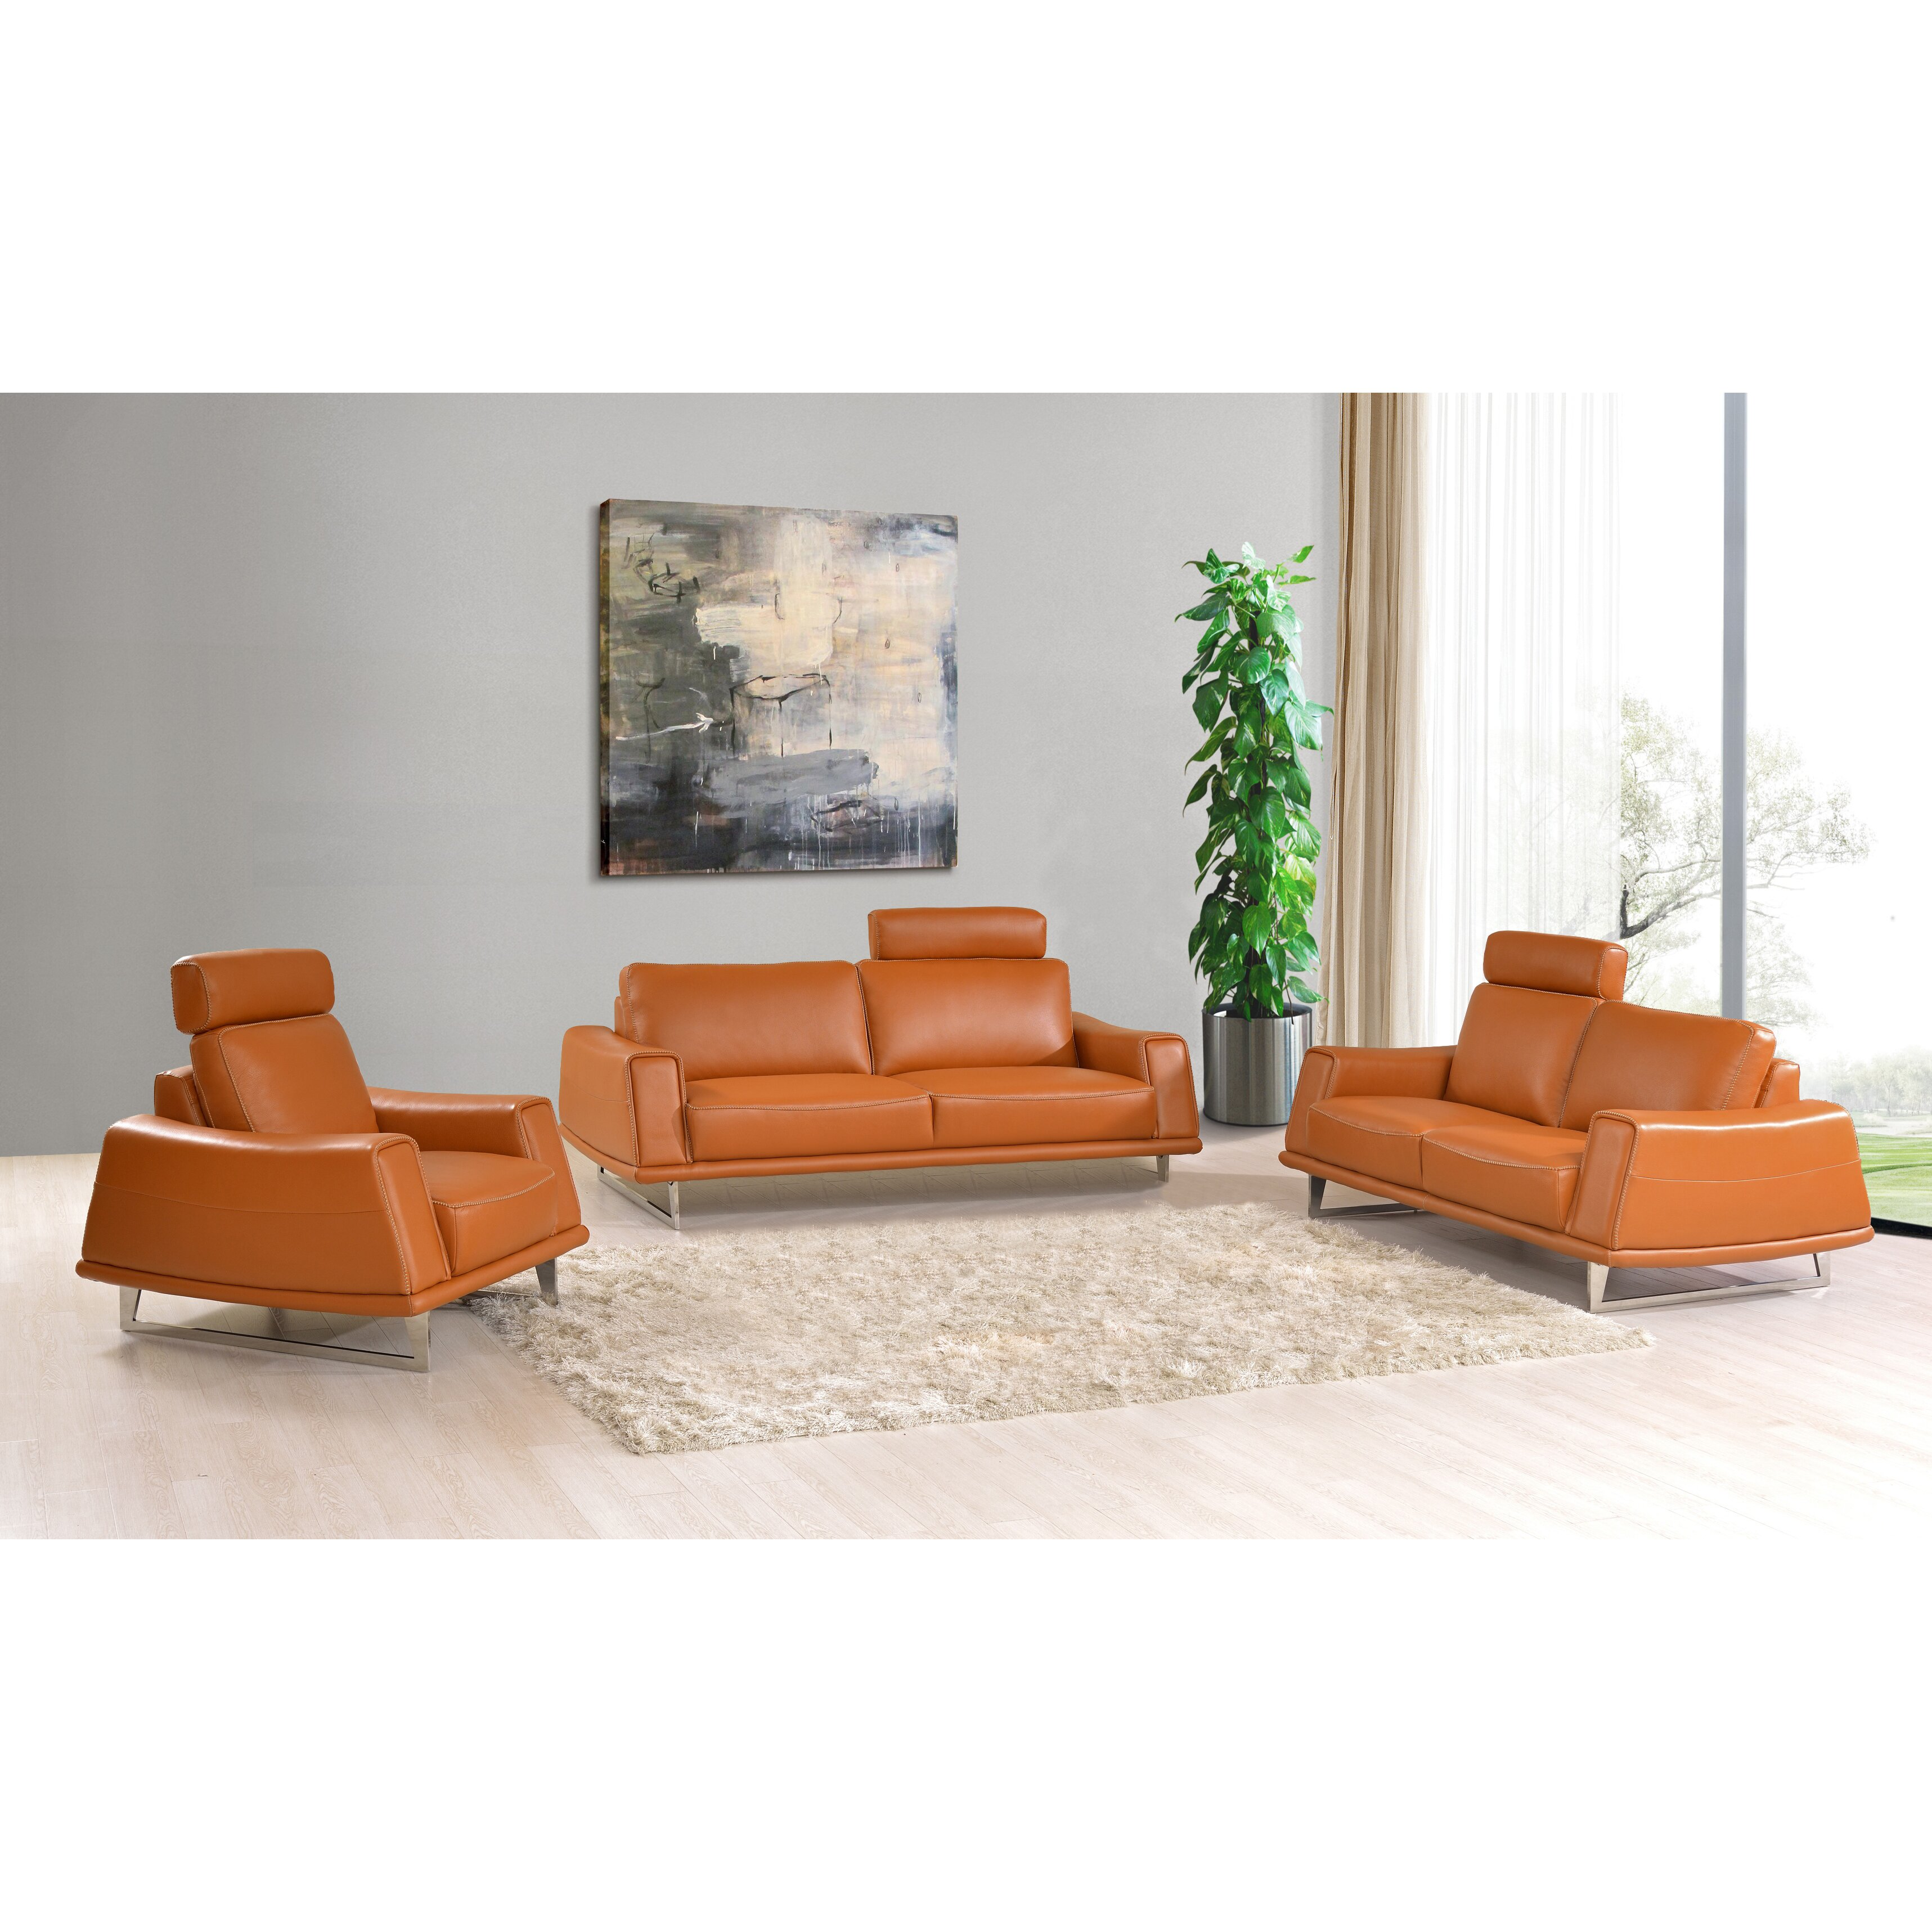 Nocidesign living room collection wayfair for Furniture 2 day shipping